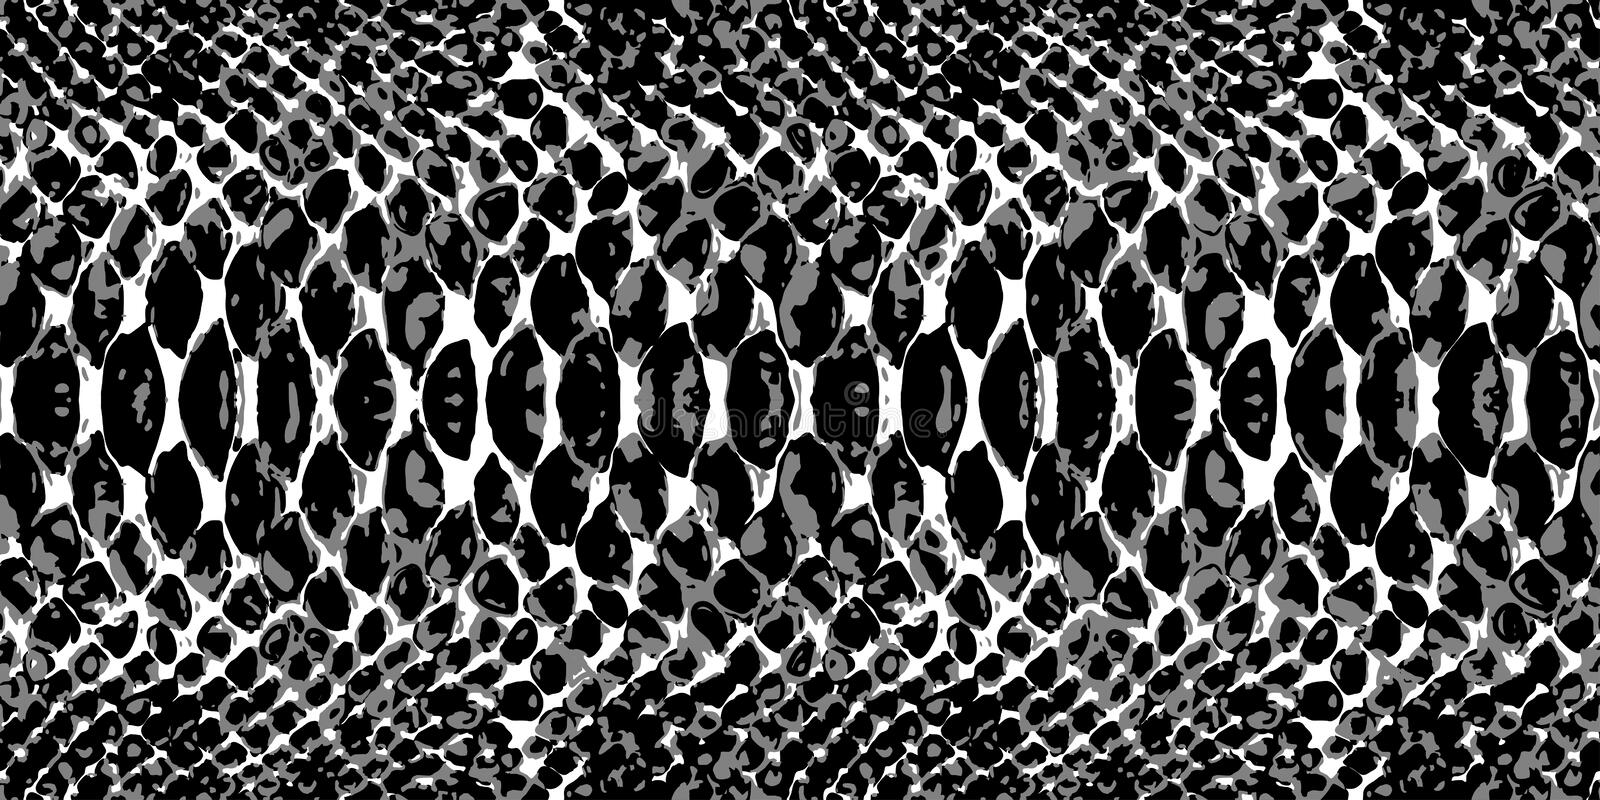 Snake skin pattern texture repeating seamless monochrome black & white. Vector. Texture snake. Fashionable print. Trendy vector background for your design. BW vector illustration